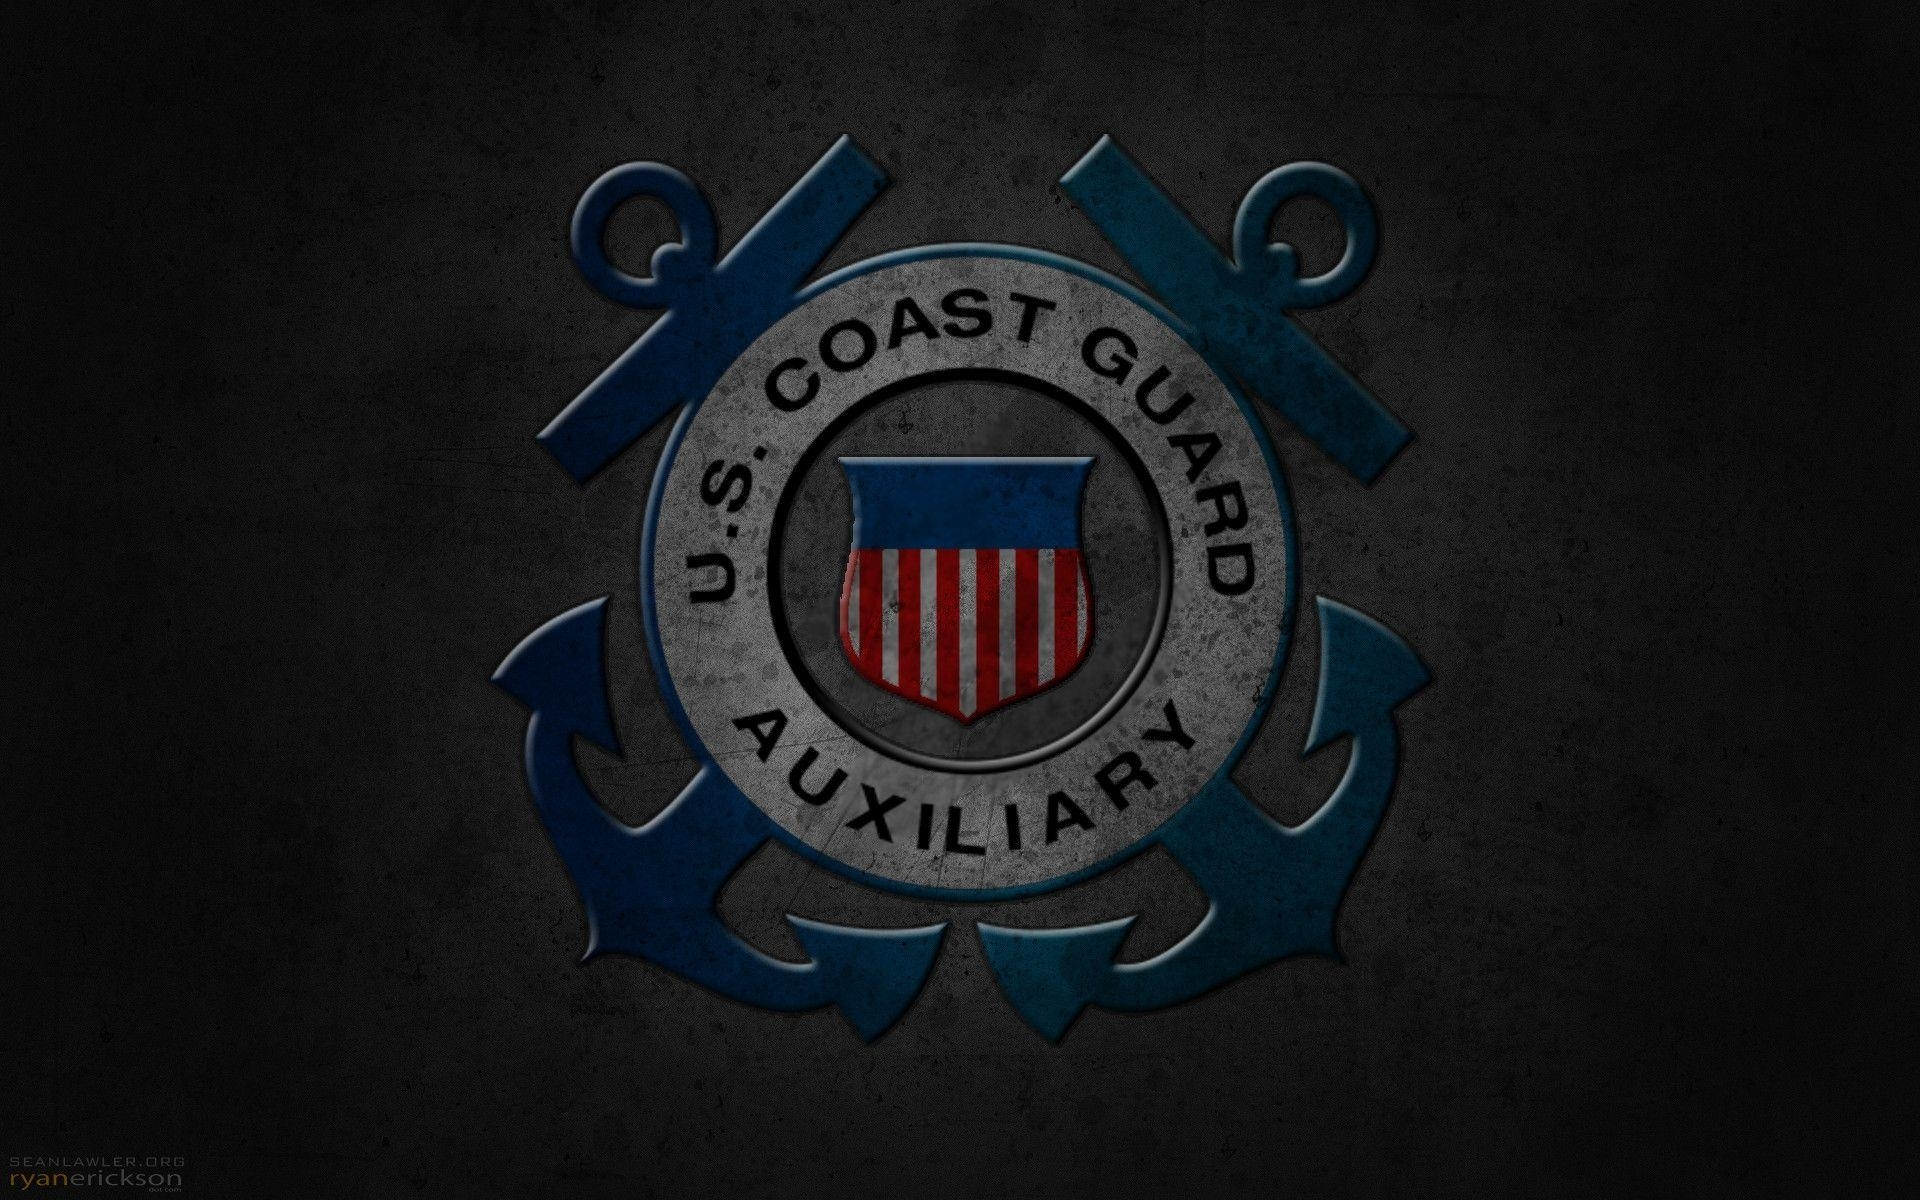 us coast guard wallpapers - wallpaper cave